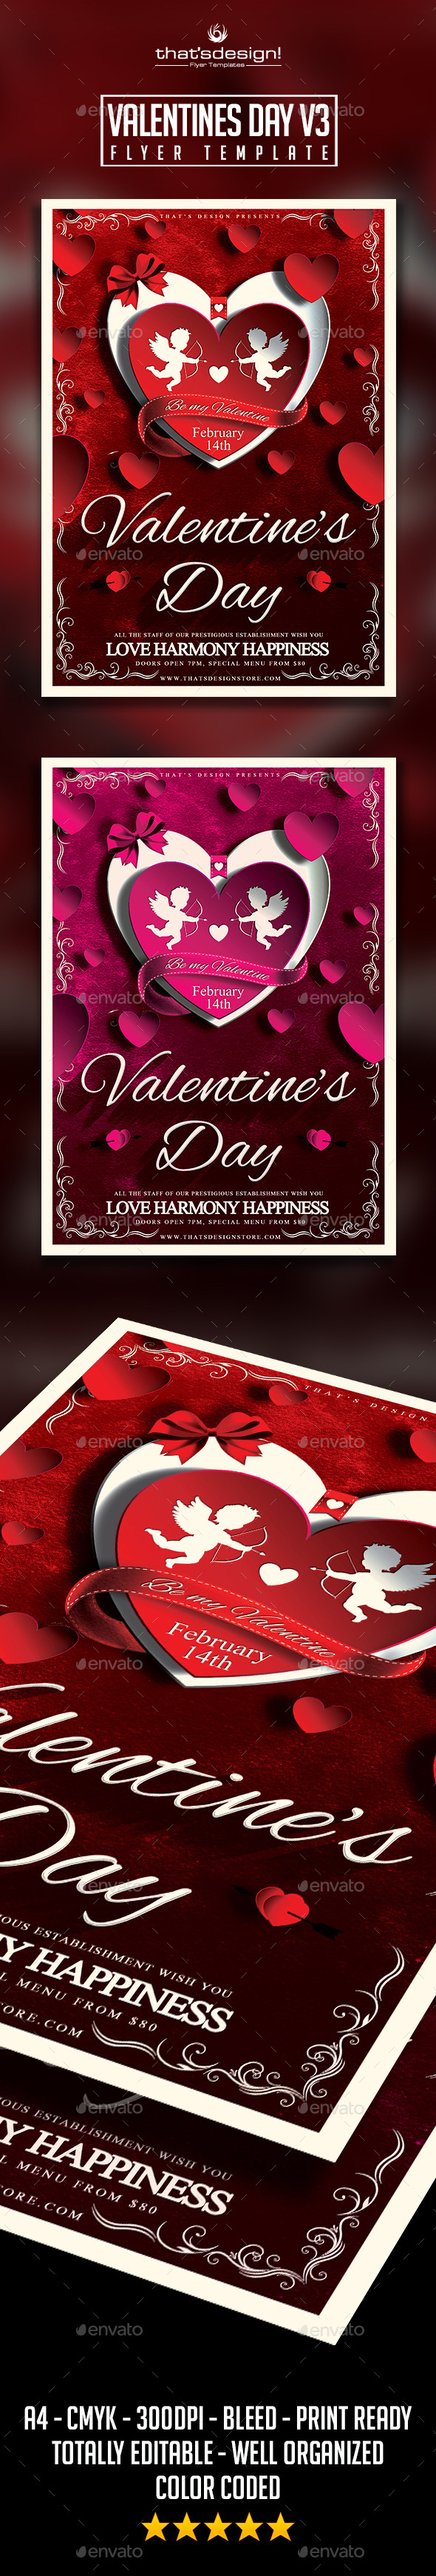 GraphicRiver Valentines Day Flyer Template V3 9897036